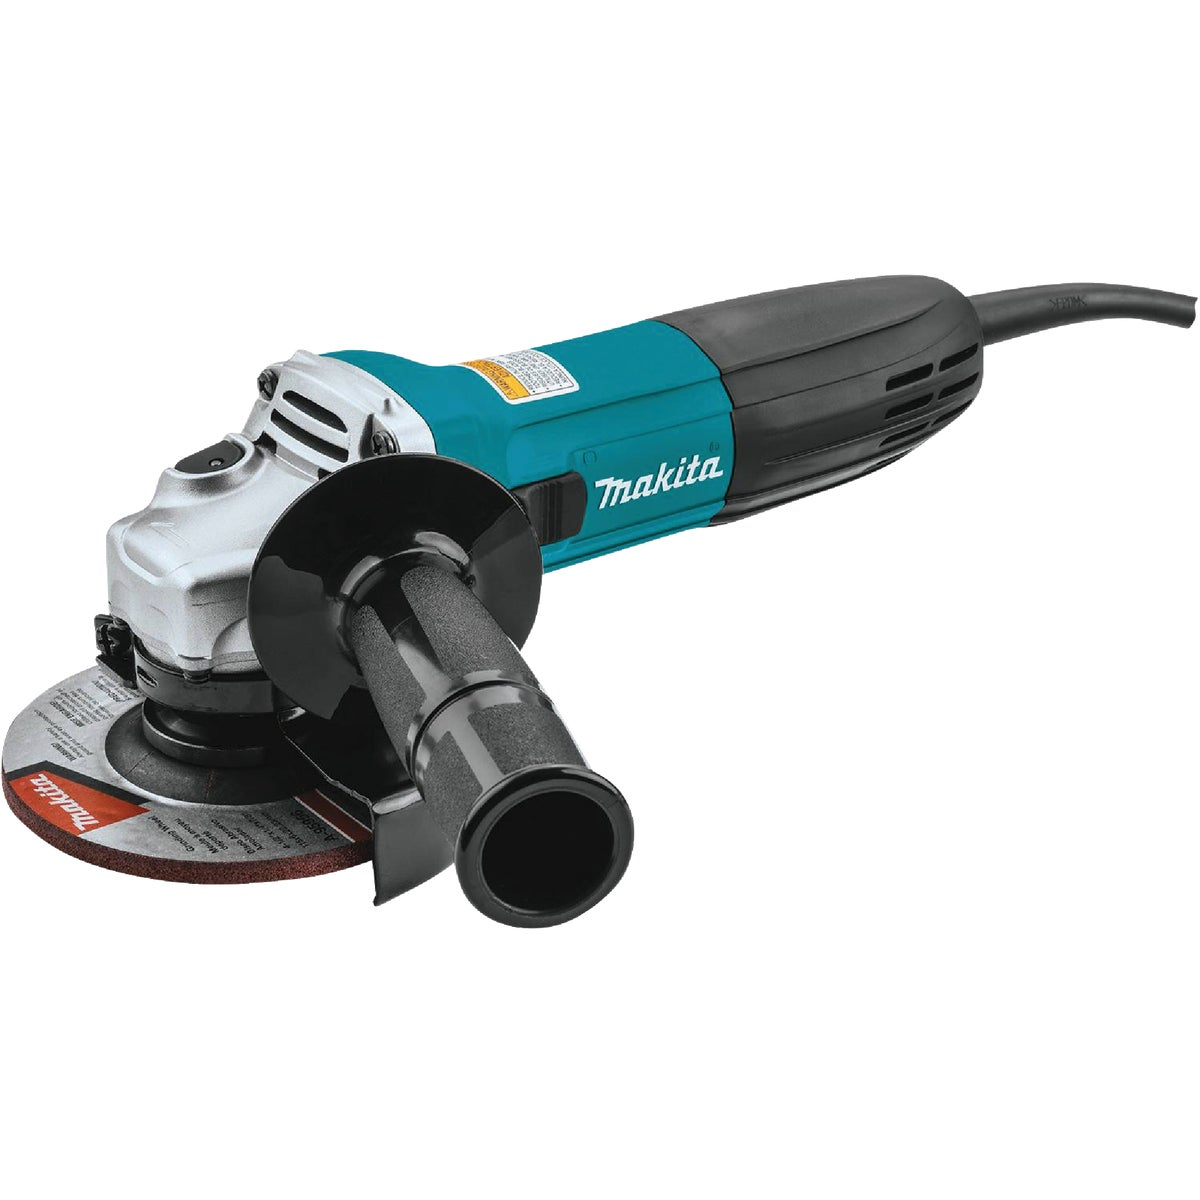 "4-1/2"" ANGLE GRINDER KIT - GA4530 by Makita Usa Inc"